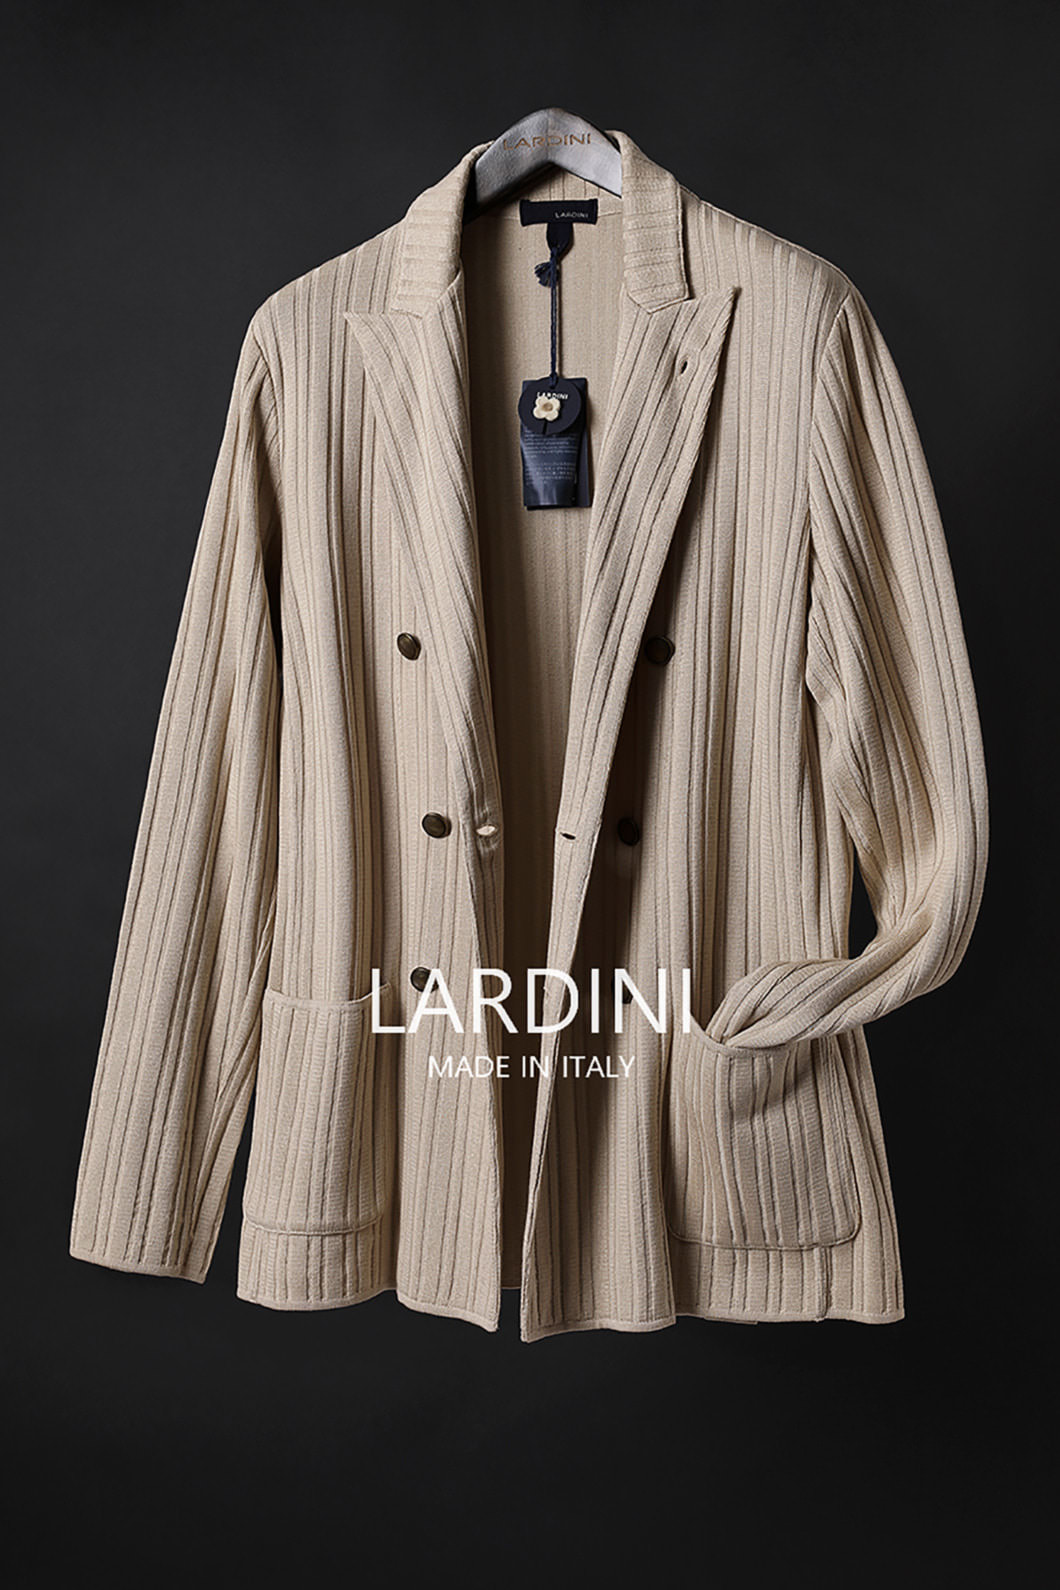 LARDINI DOUBLE BREAST KNIT JACKET-BEIGE[ITALY-Original]품절임박!!